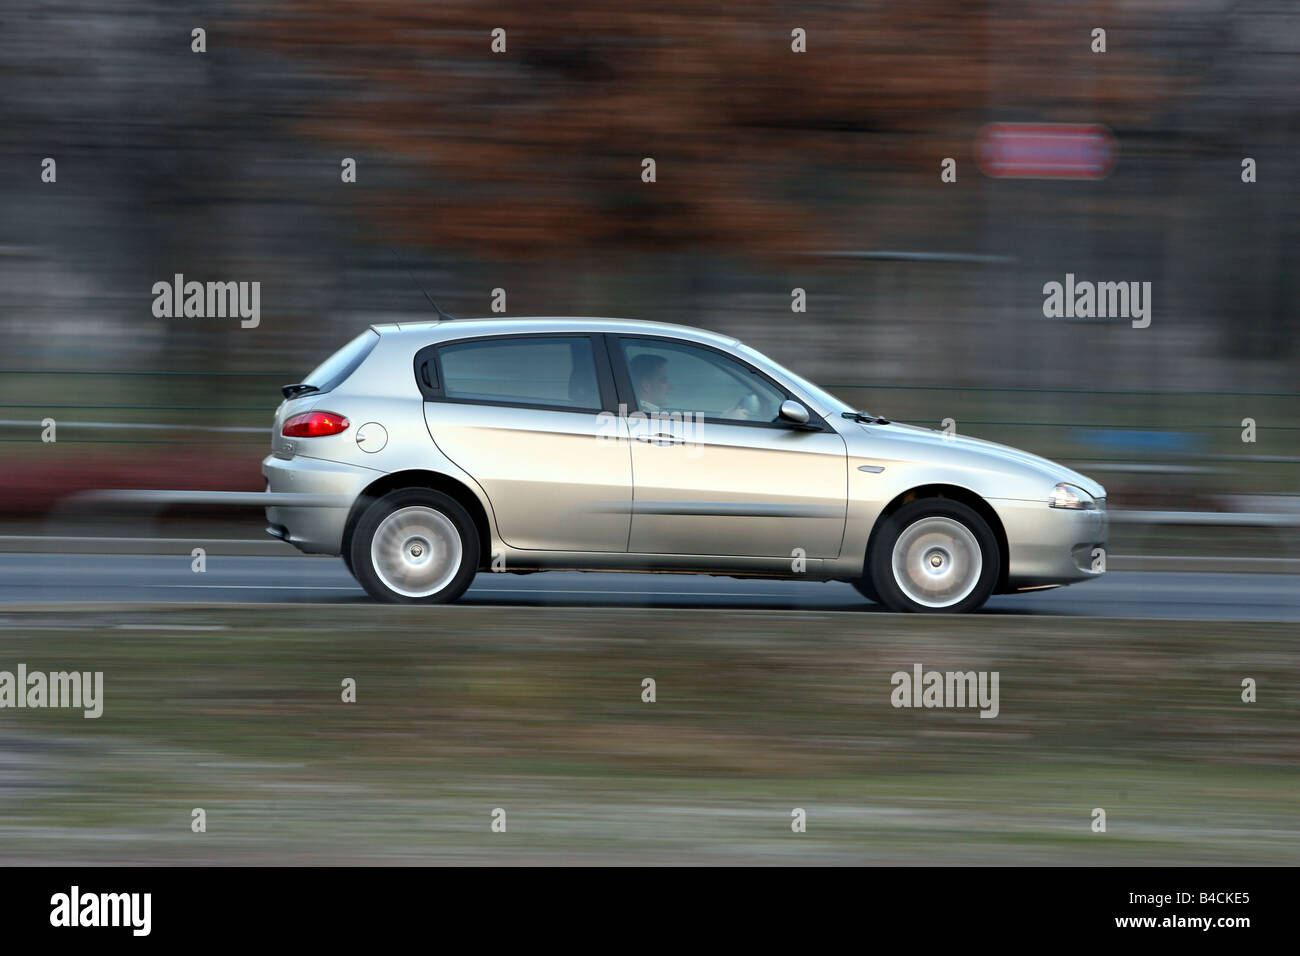 Alfa Romeo 147 1.9 JTD 16 V Distinctive, model year 2004-, silver, driving, side view, country road - Stock Image